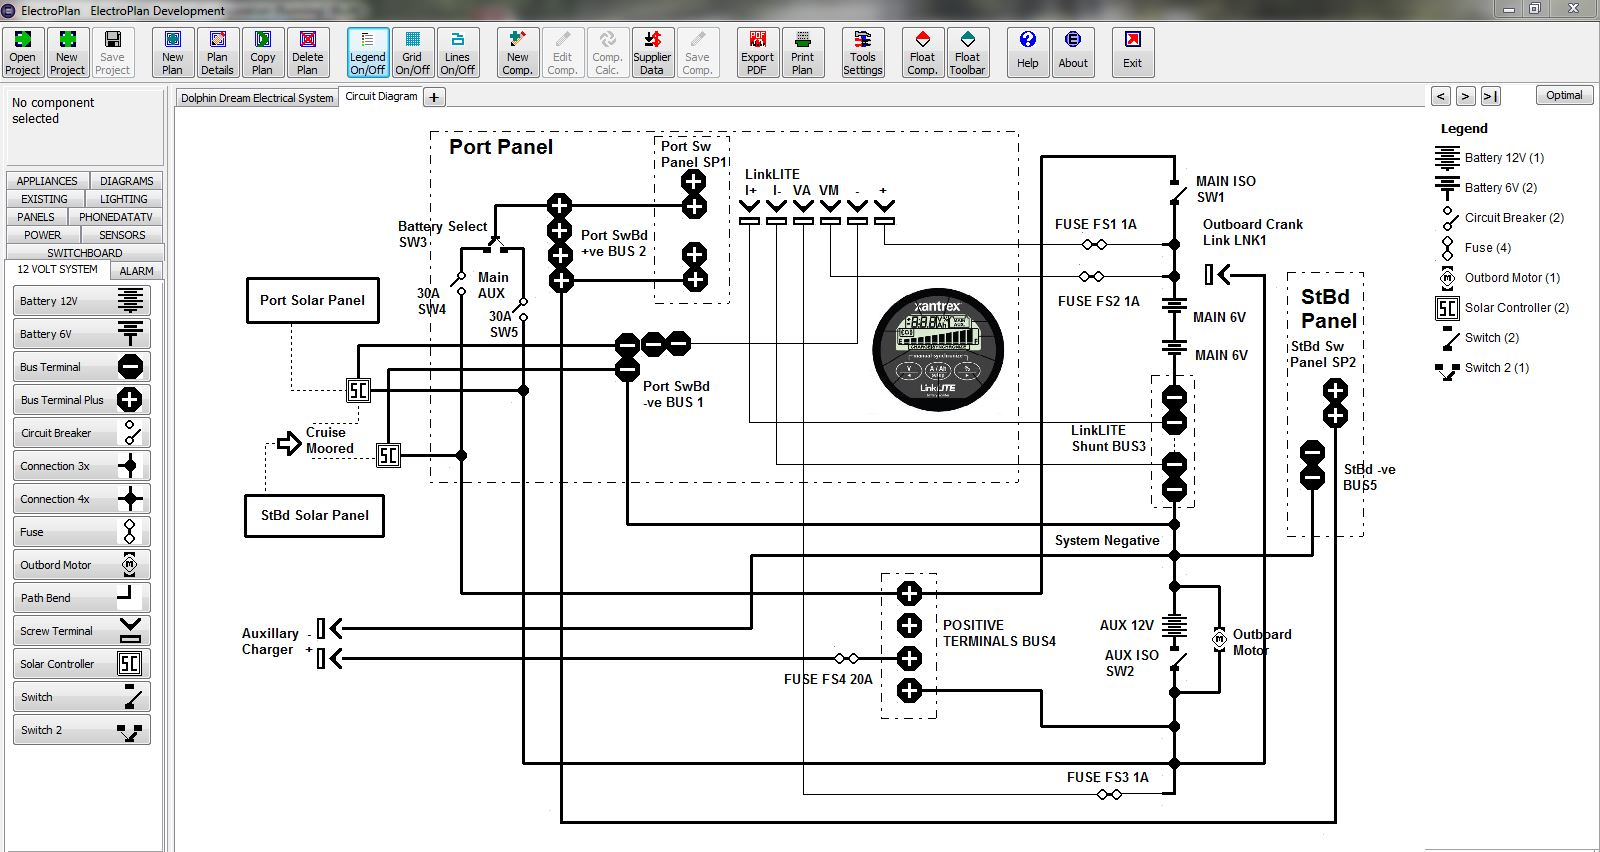 Electroplan Software Electrical Pricing Planning Documents House Wiring Quotation Circuit Diagrams Screen Capture System